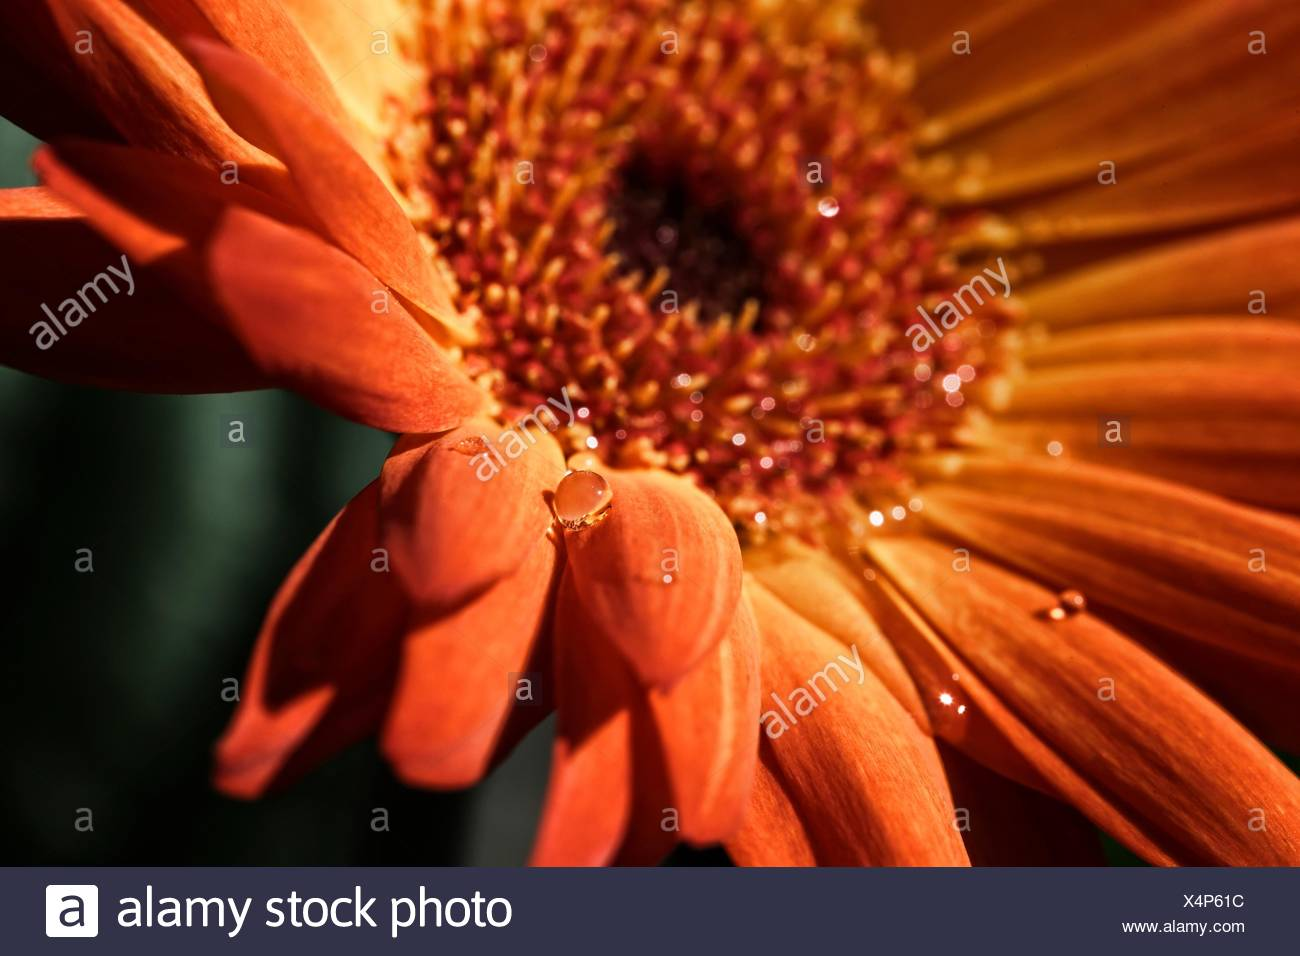 Orange Flower With Water Drops - Stock Image